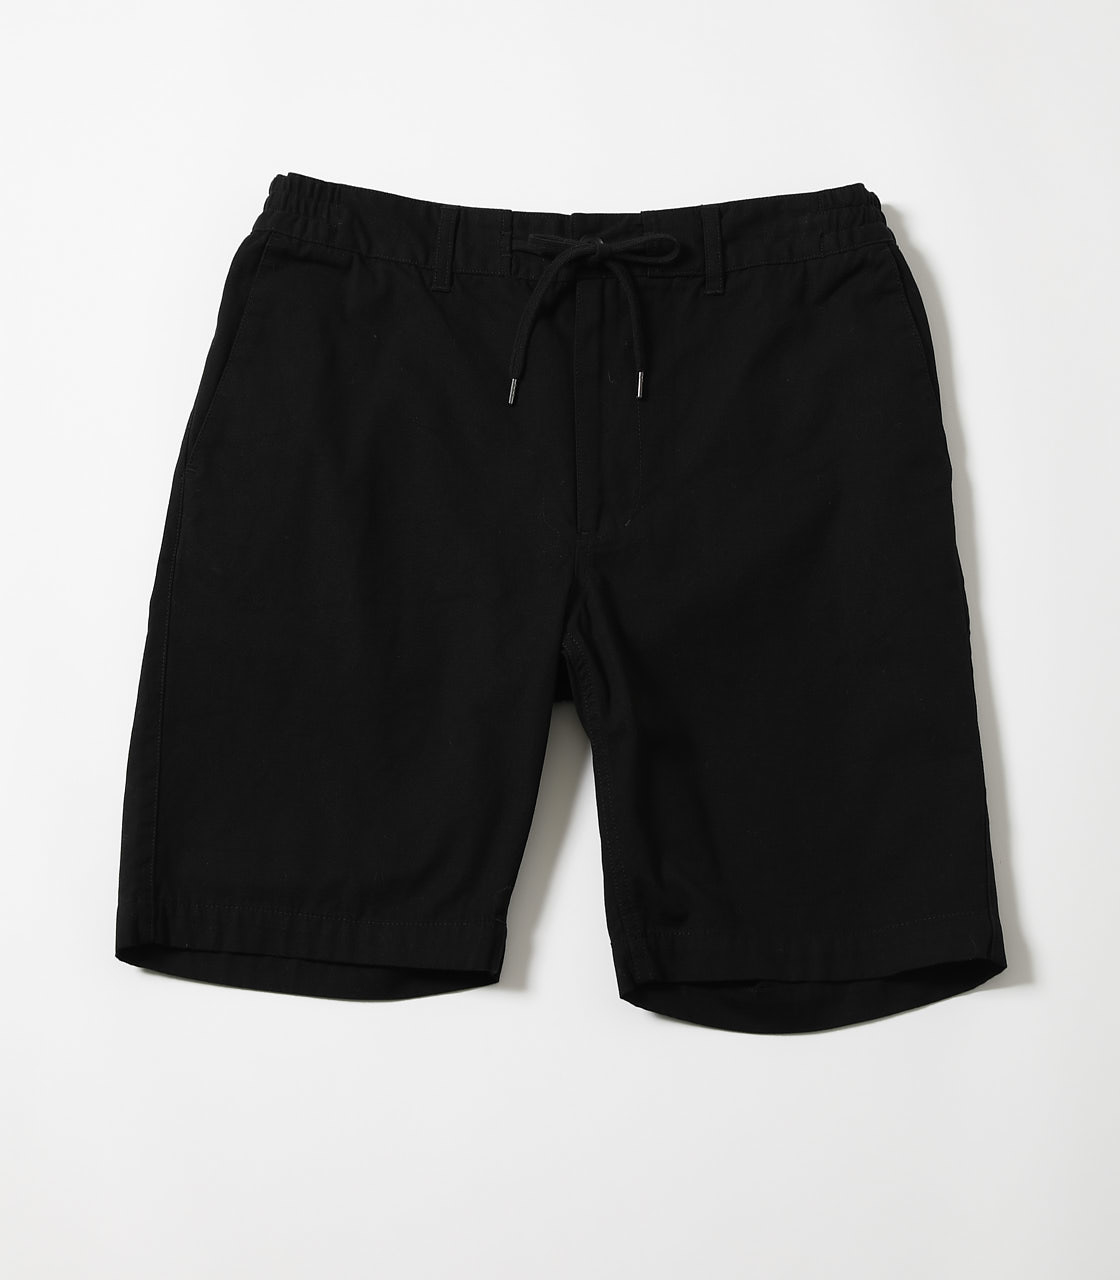 TWILL COLOR SHORTS 詳細画像 BLK 1